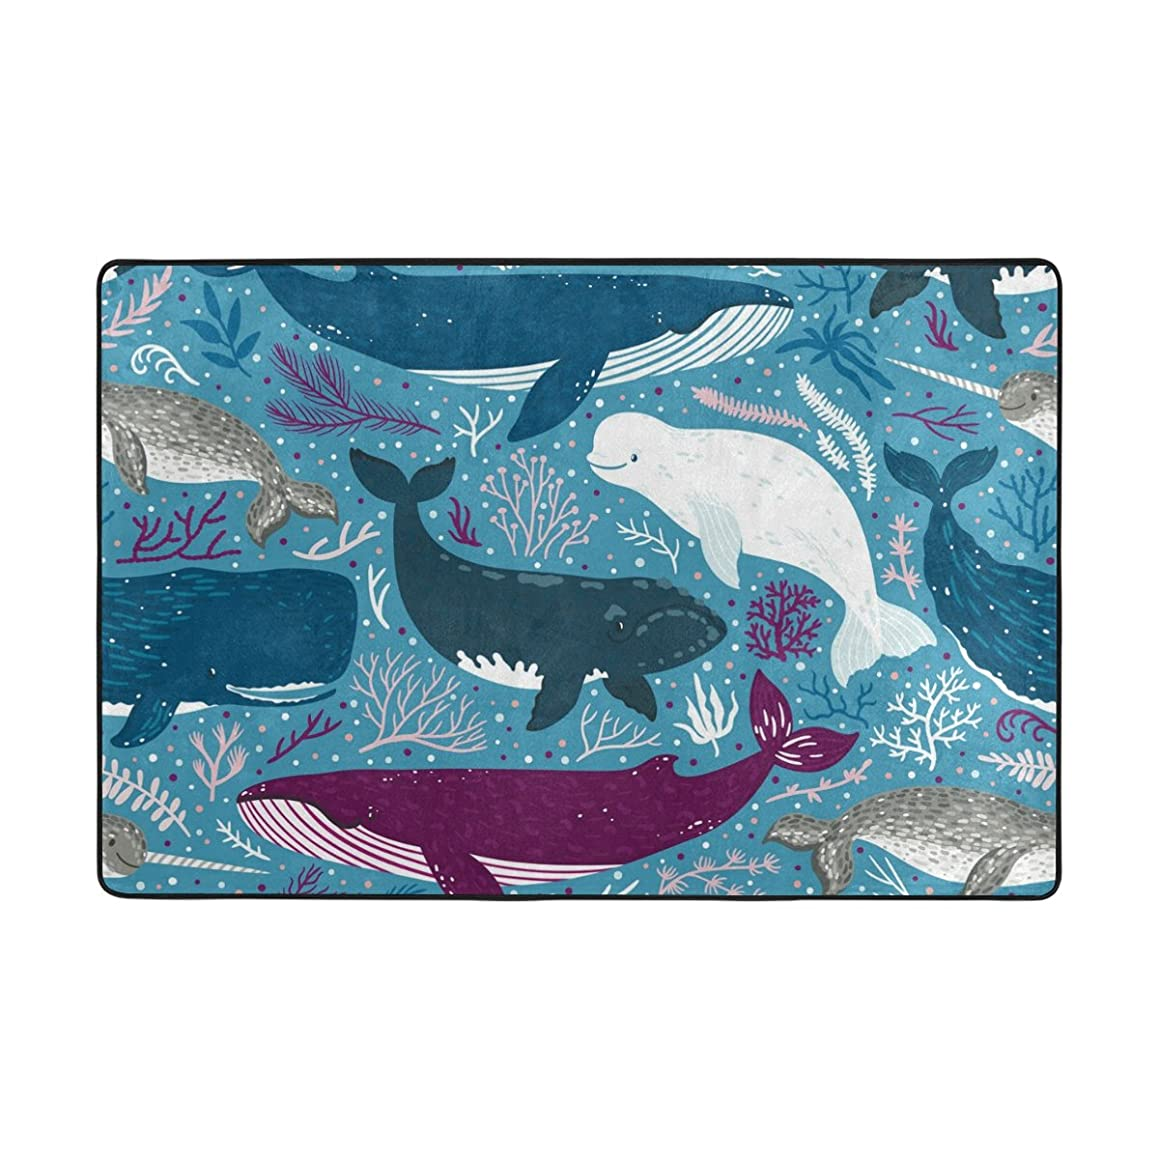 ColourLife Whales Playing Lightweight Area Soft Rugs Floor Mat Decoration for Kids Room Living Room Bedroom Carpet Mats 72 x 48 inches